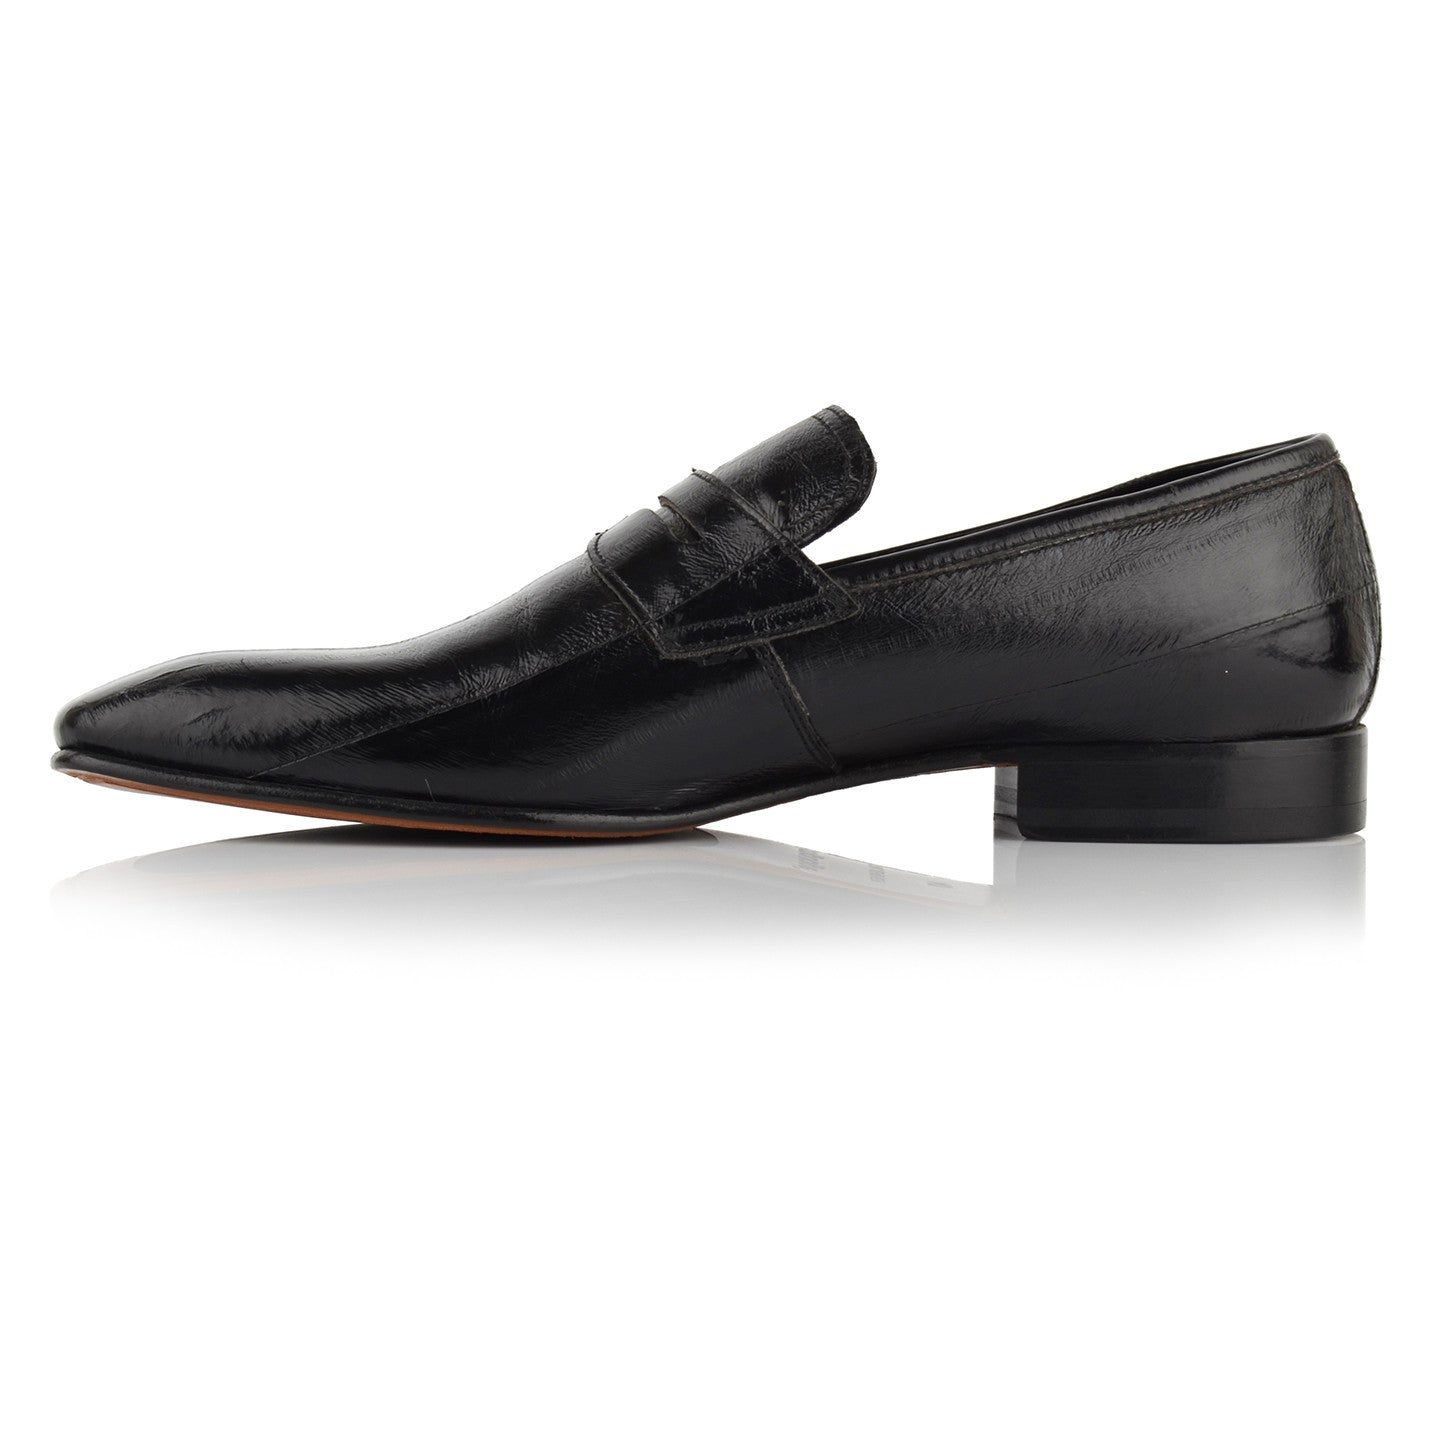 LM140 - Language Men's Exotic Black Loafer Shoes